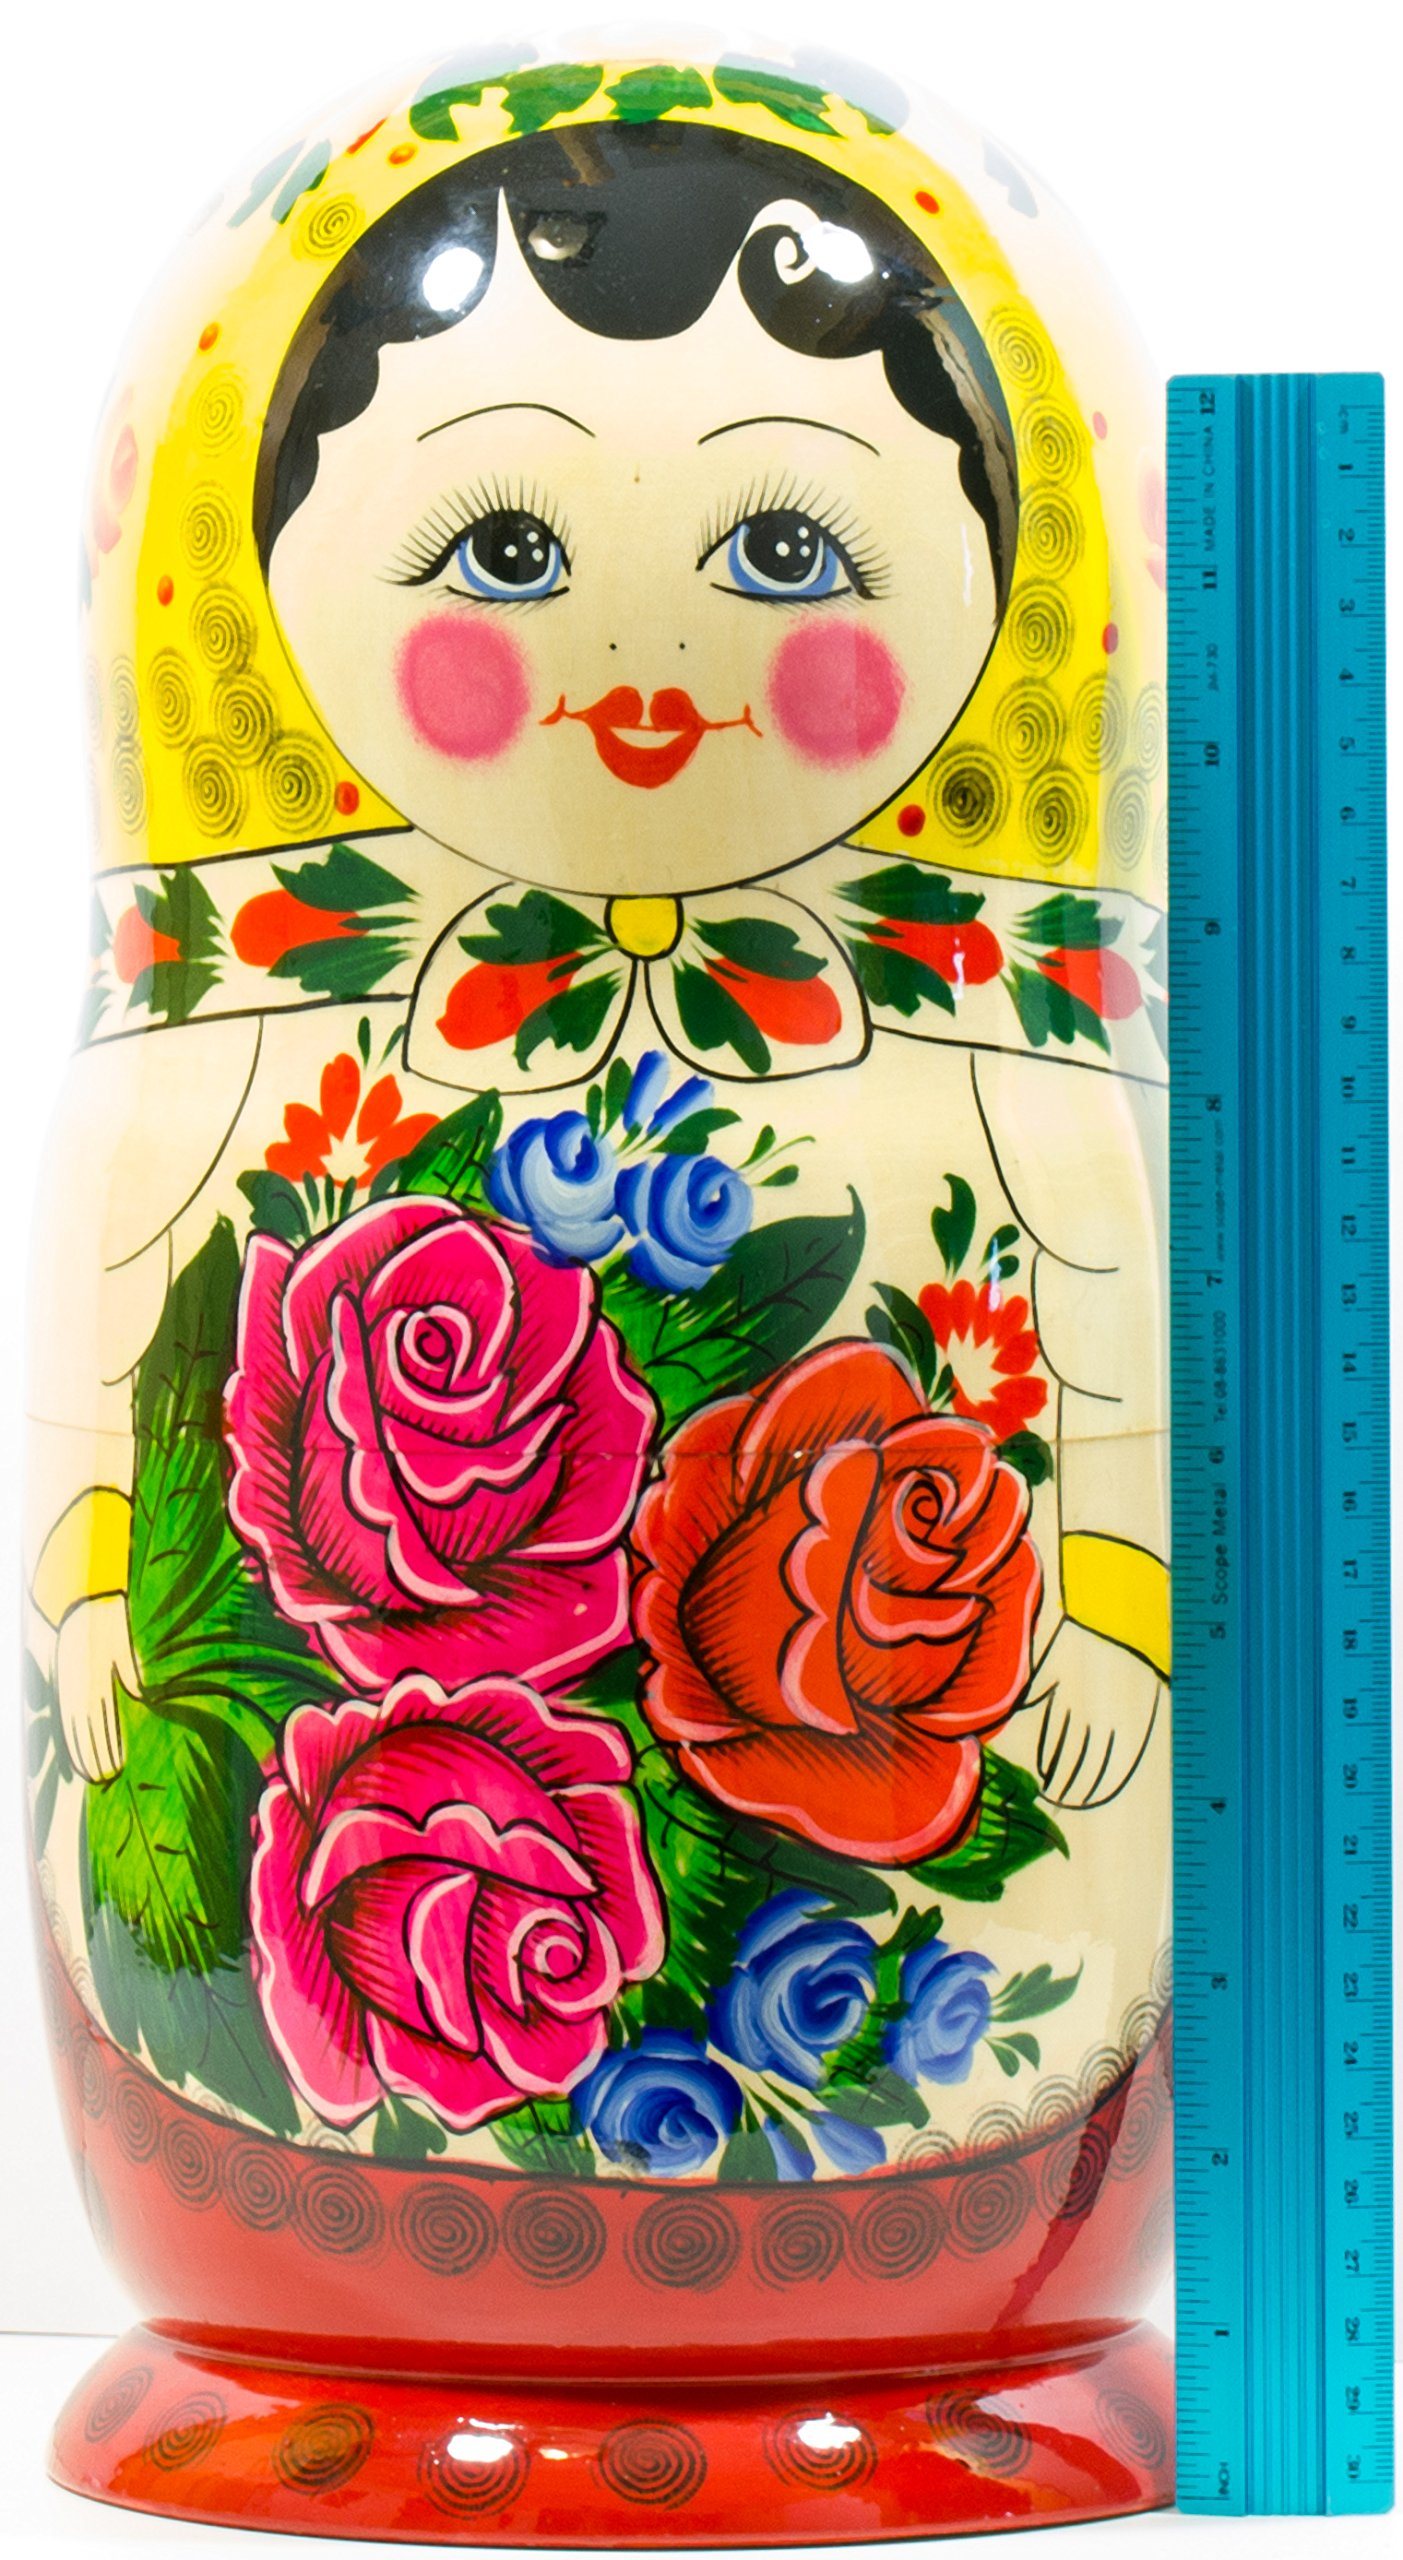 Russian Nesting Doll -Semenovo - Hand Painted in Russia - 6 Color|Size Variations - Wooden Decoration Gift Doll - Traditional Matryoshka Babushka (14``(20 Dolls in 1), Yellow - Red) by craftsfromrussia (Image #7)